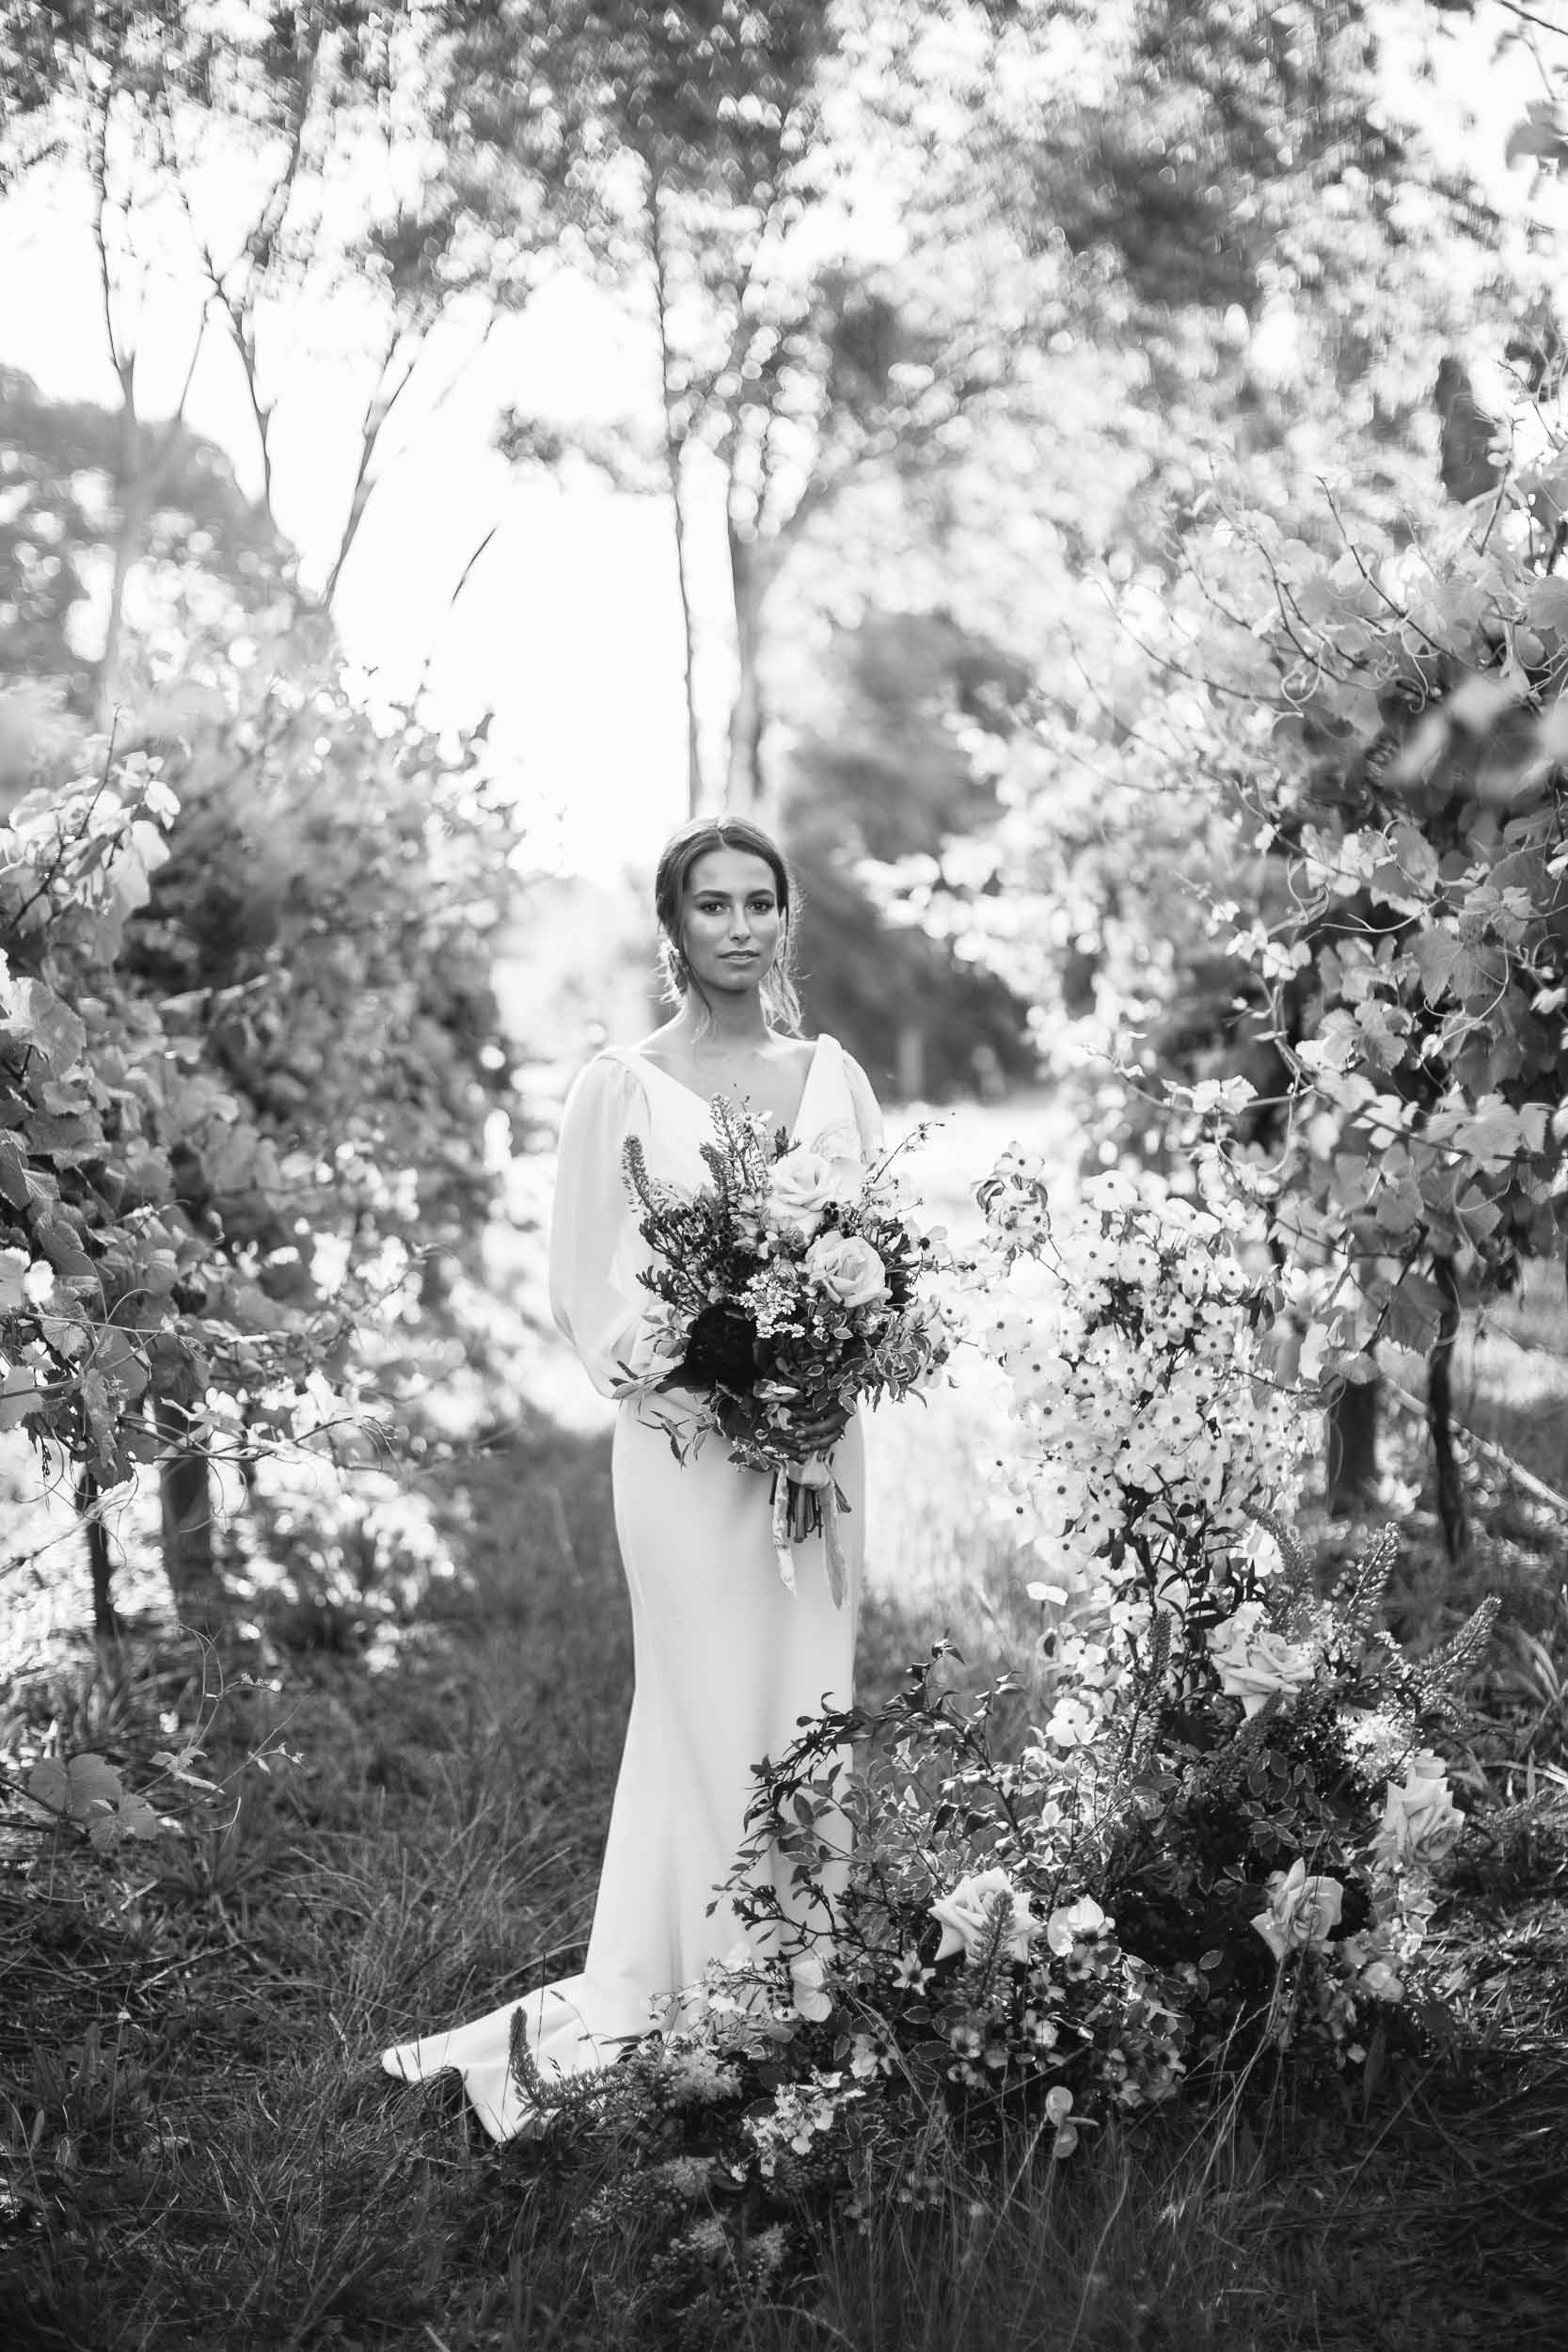 Kas-Richards-Wedding-Ediorial-Photographer-Mornington-Peninsula-Winery-Wedding-Karen-Willis-Holmes-Gown-Pop-up-with-Style-Planners-13.jpg